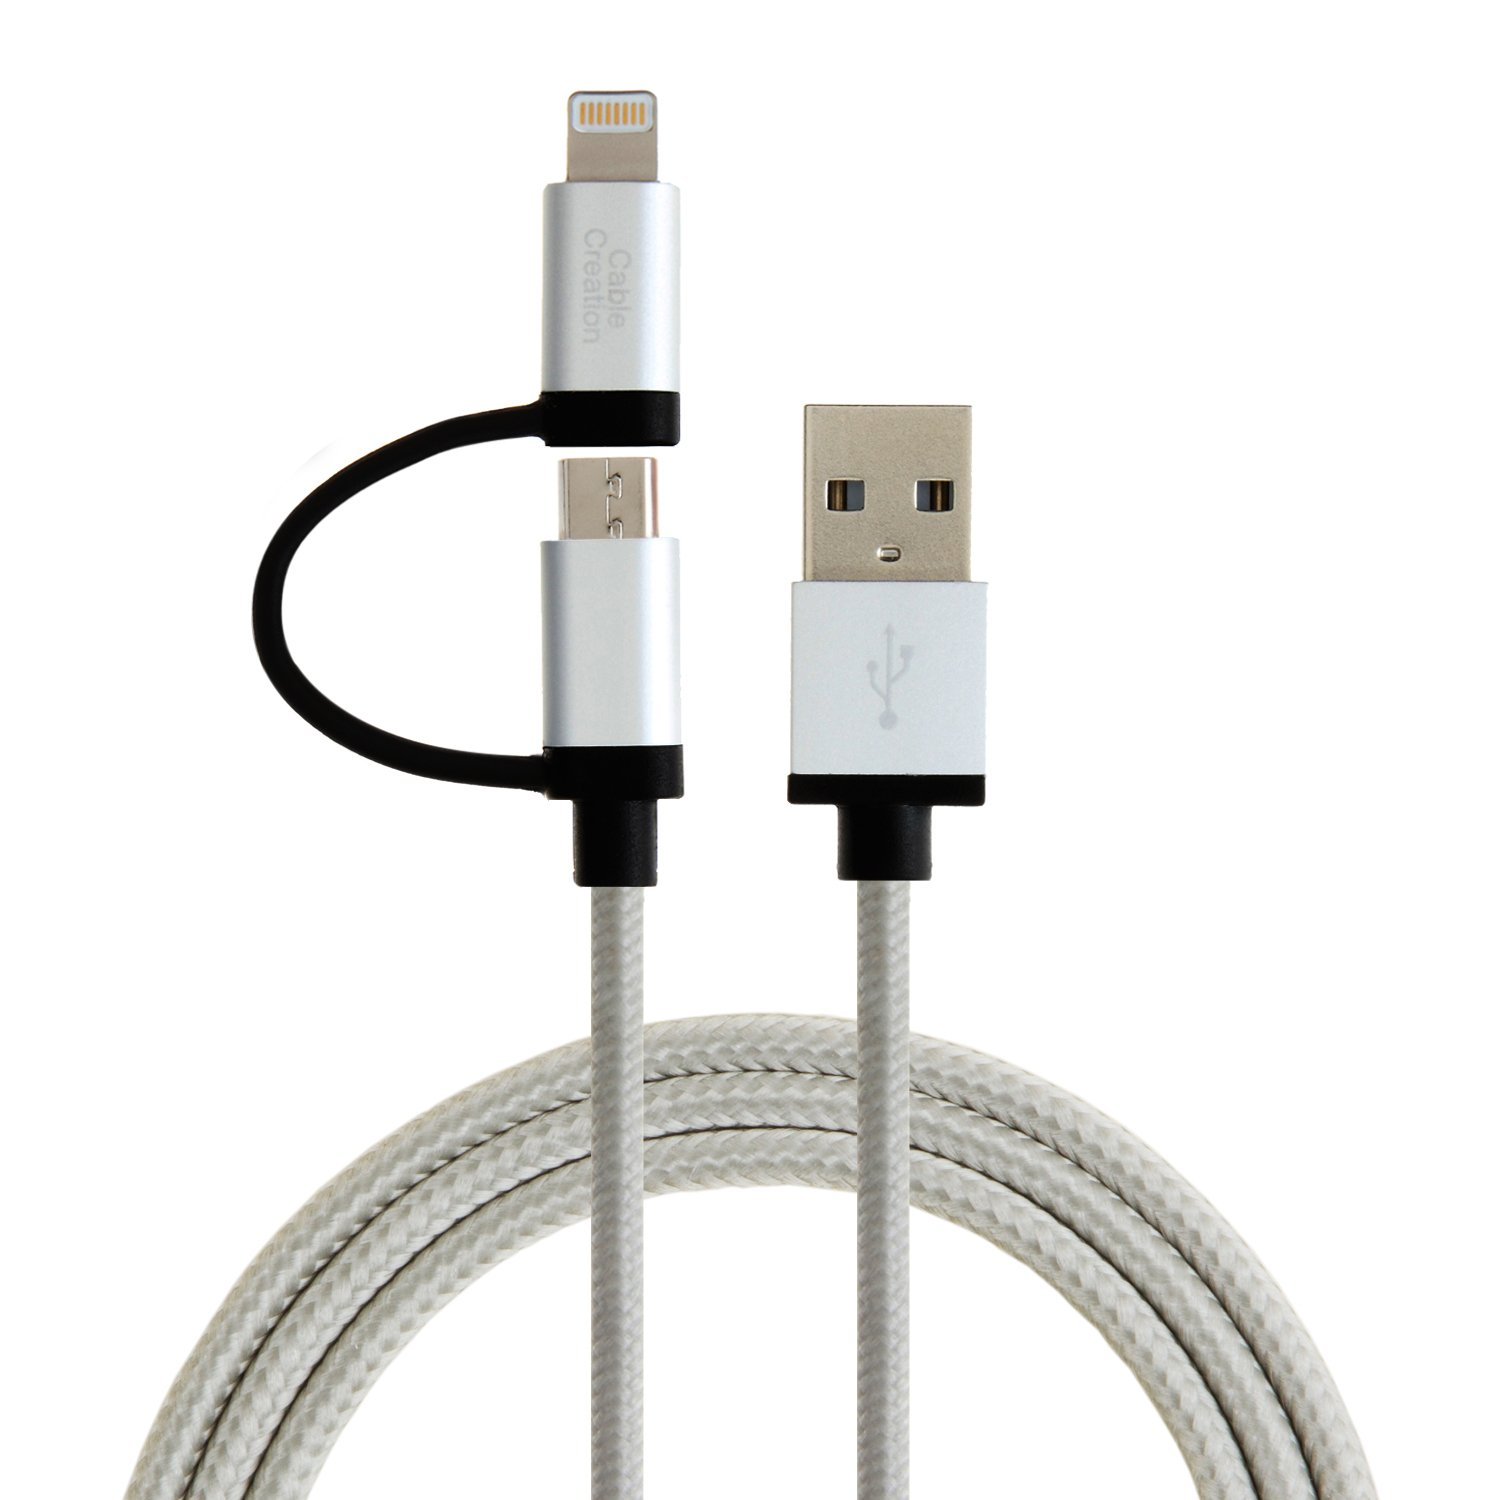 Top Suppliers Short Apple Lighting Cable – 2-in-1 Lightning and Micro USB to USB Data Sync Charge Cable, #CC0036 – CableCreation